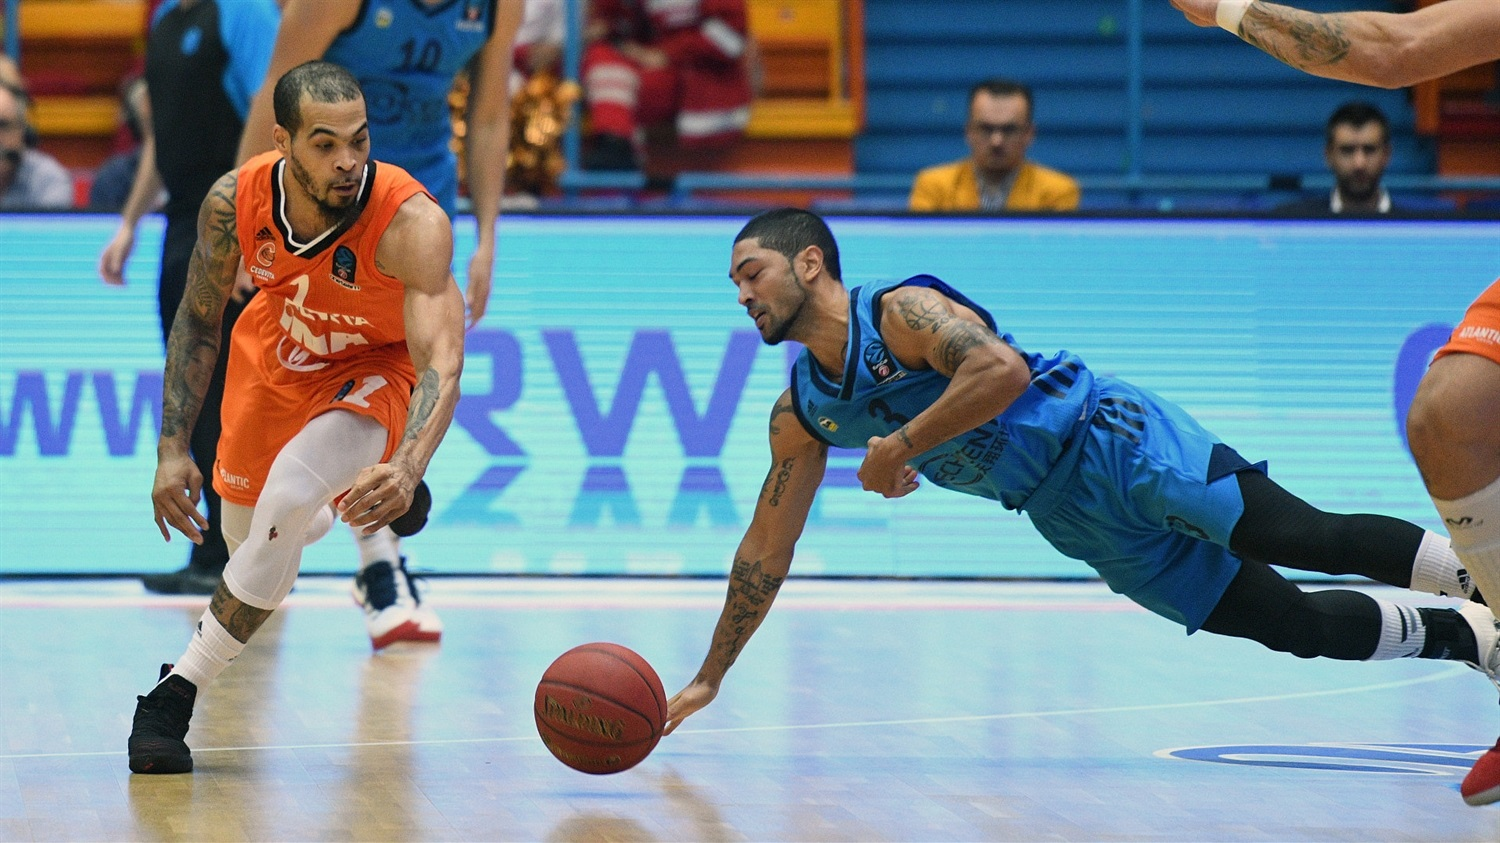 Peyton Siva - ALBA Berlin (photo Cedevita) - EC18